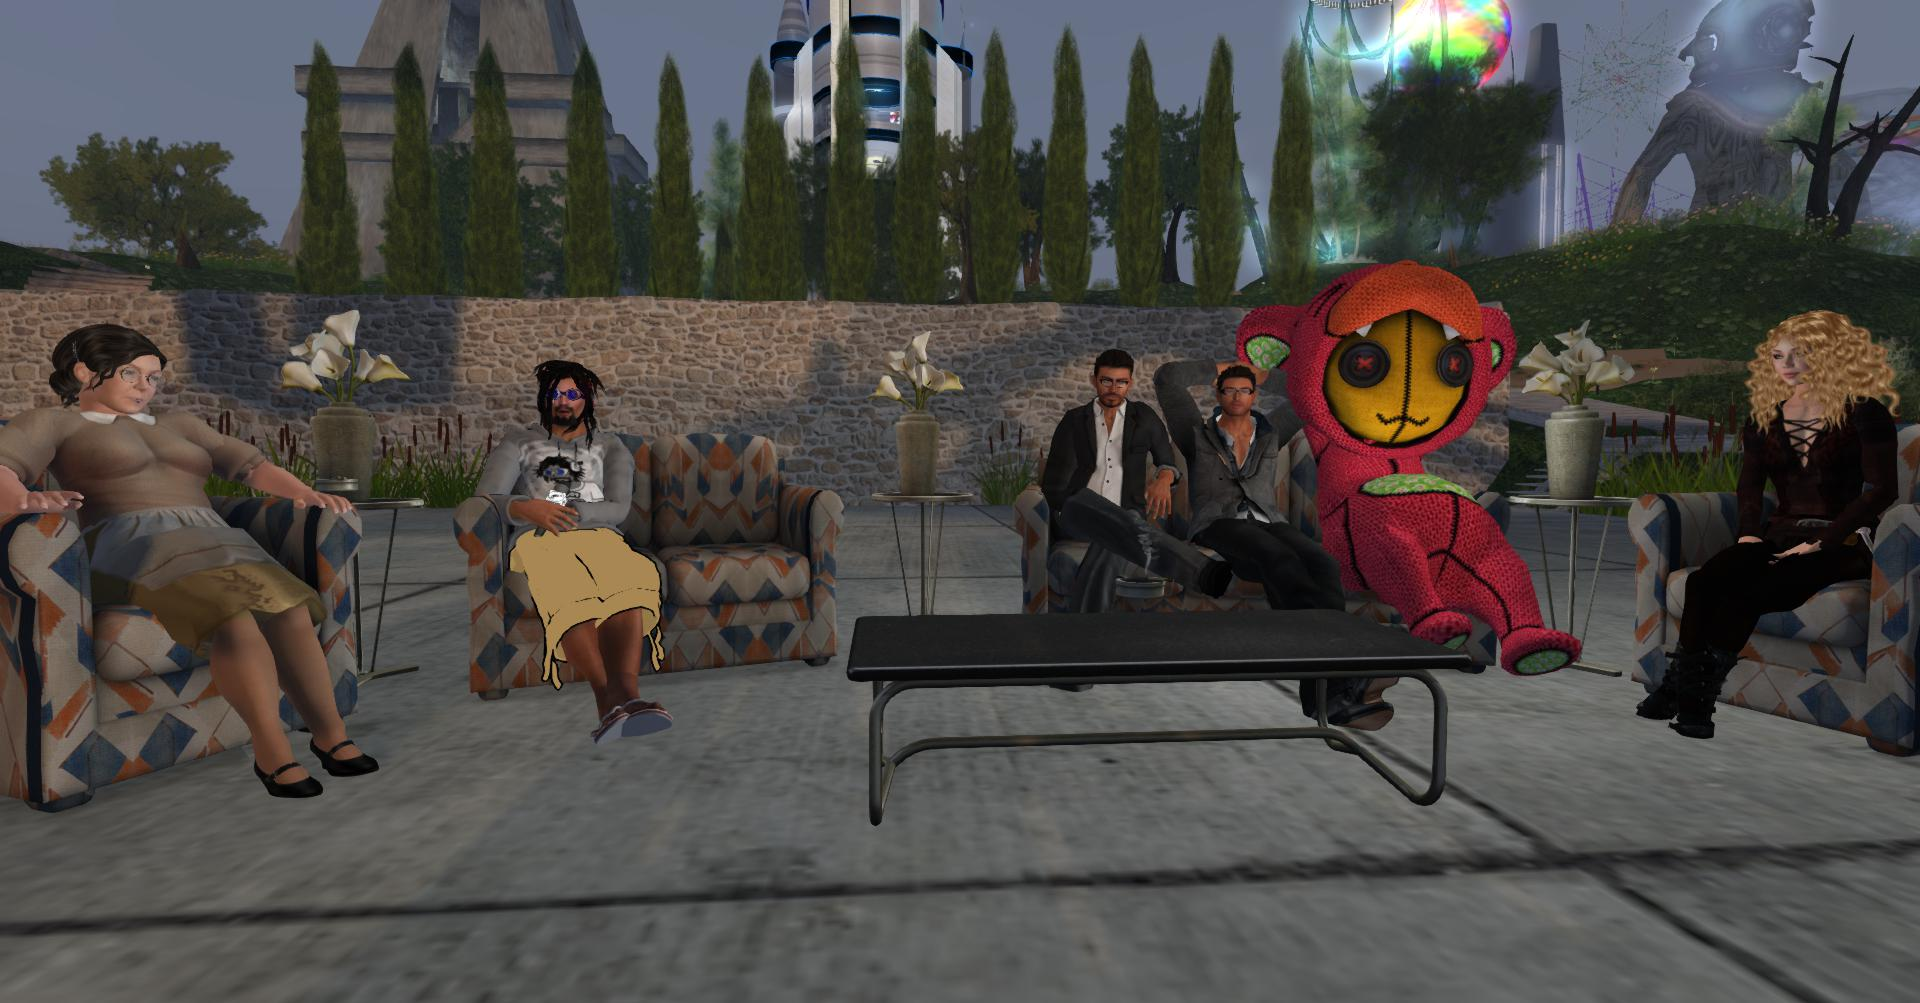 Photo showing six people from Second Life sitting around a table, one dressed in a costume. They look relaxed.